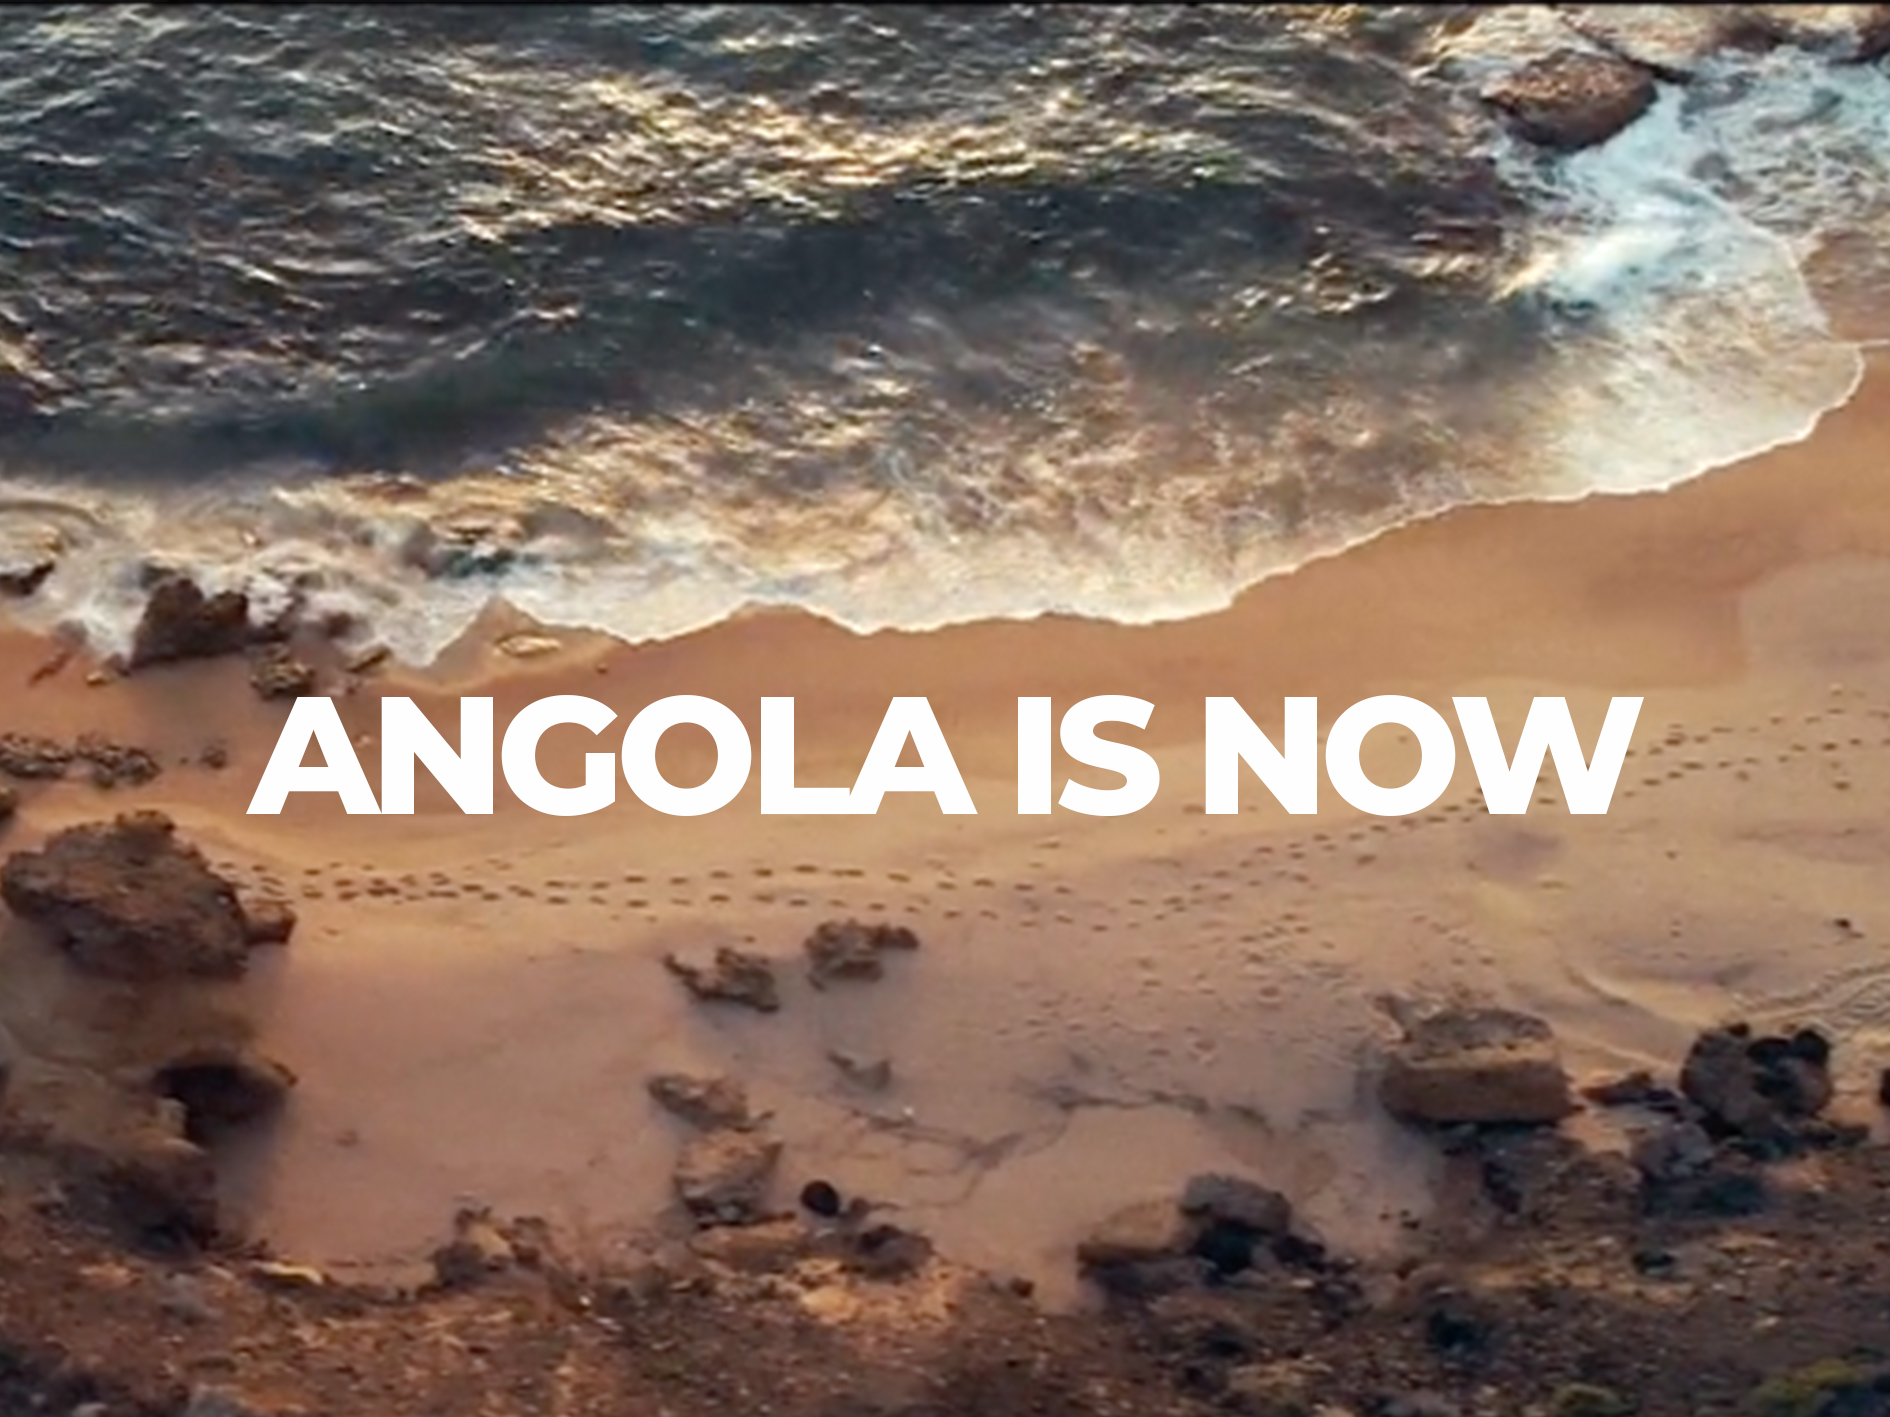 ANGOLA IS NOW.jpg